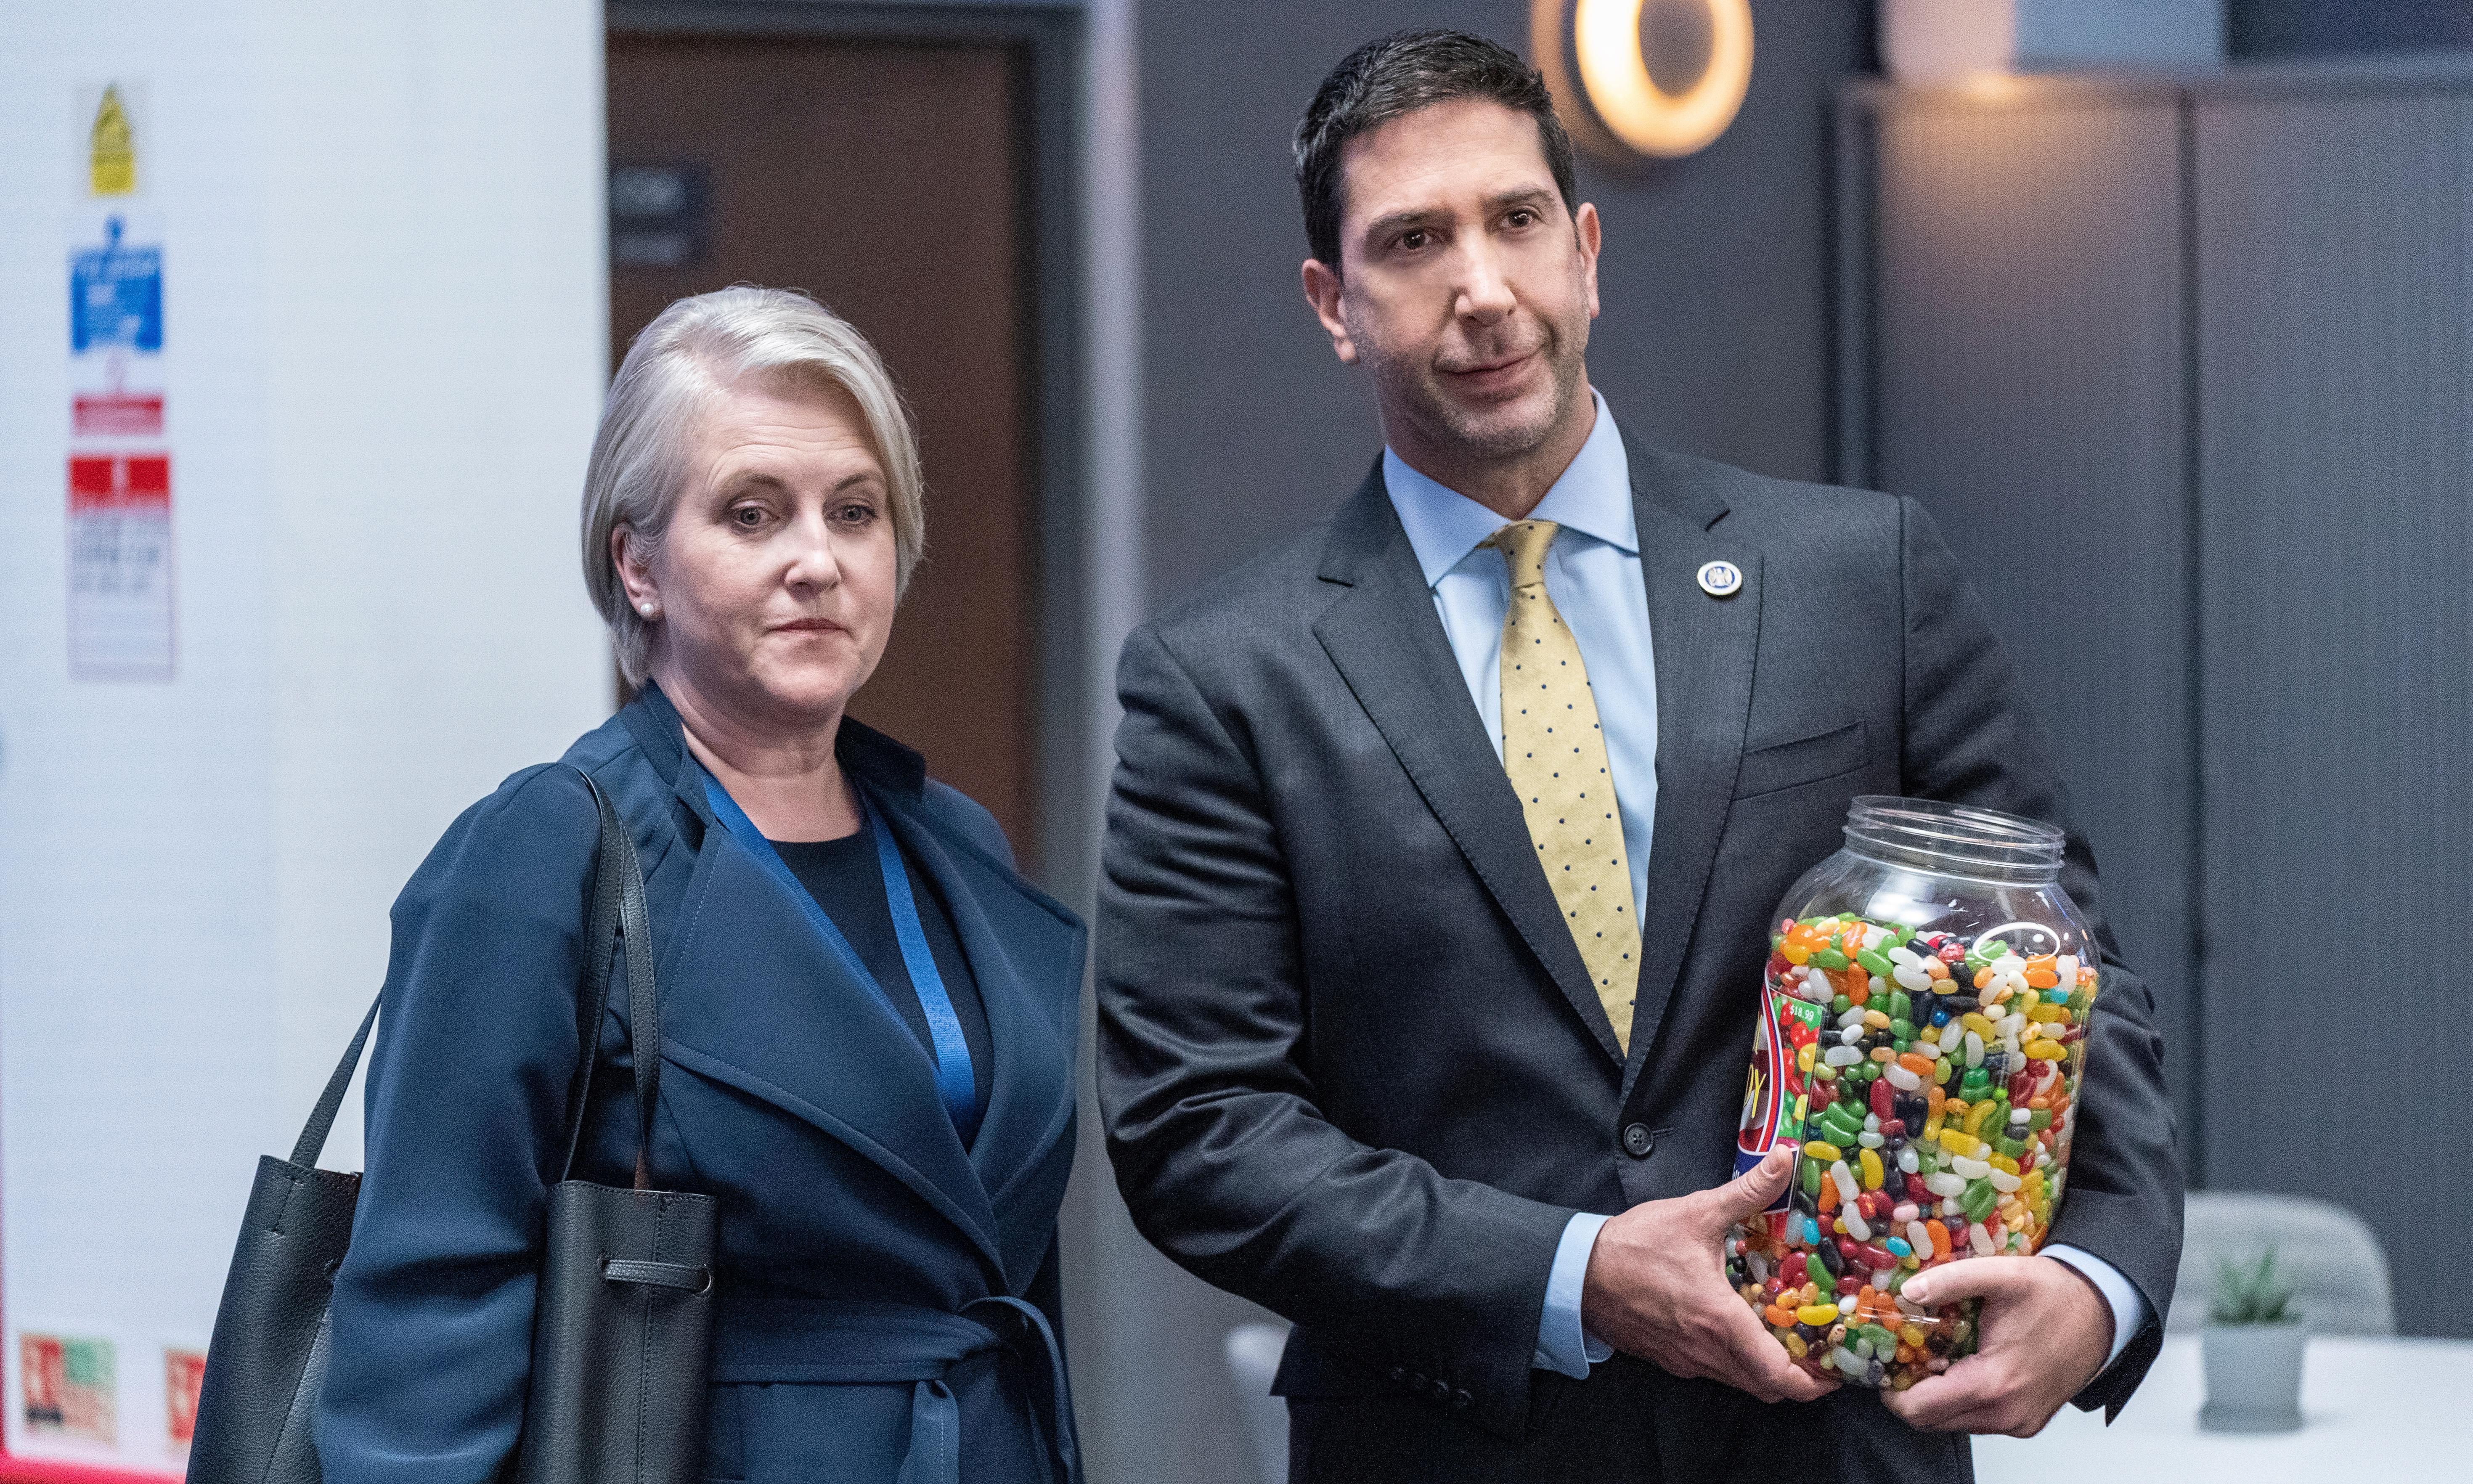 Intelligence review – never has David Schwimmer been so squandered